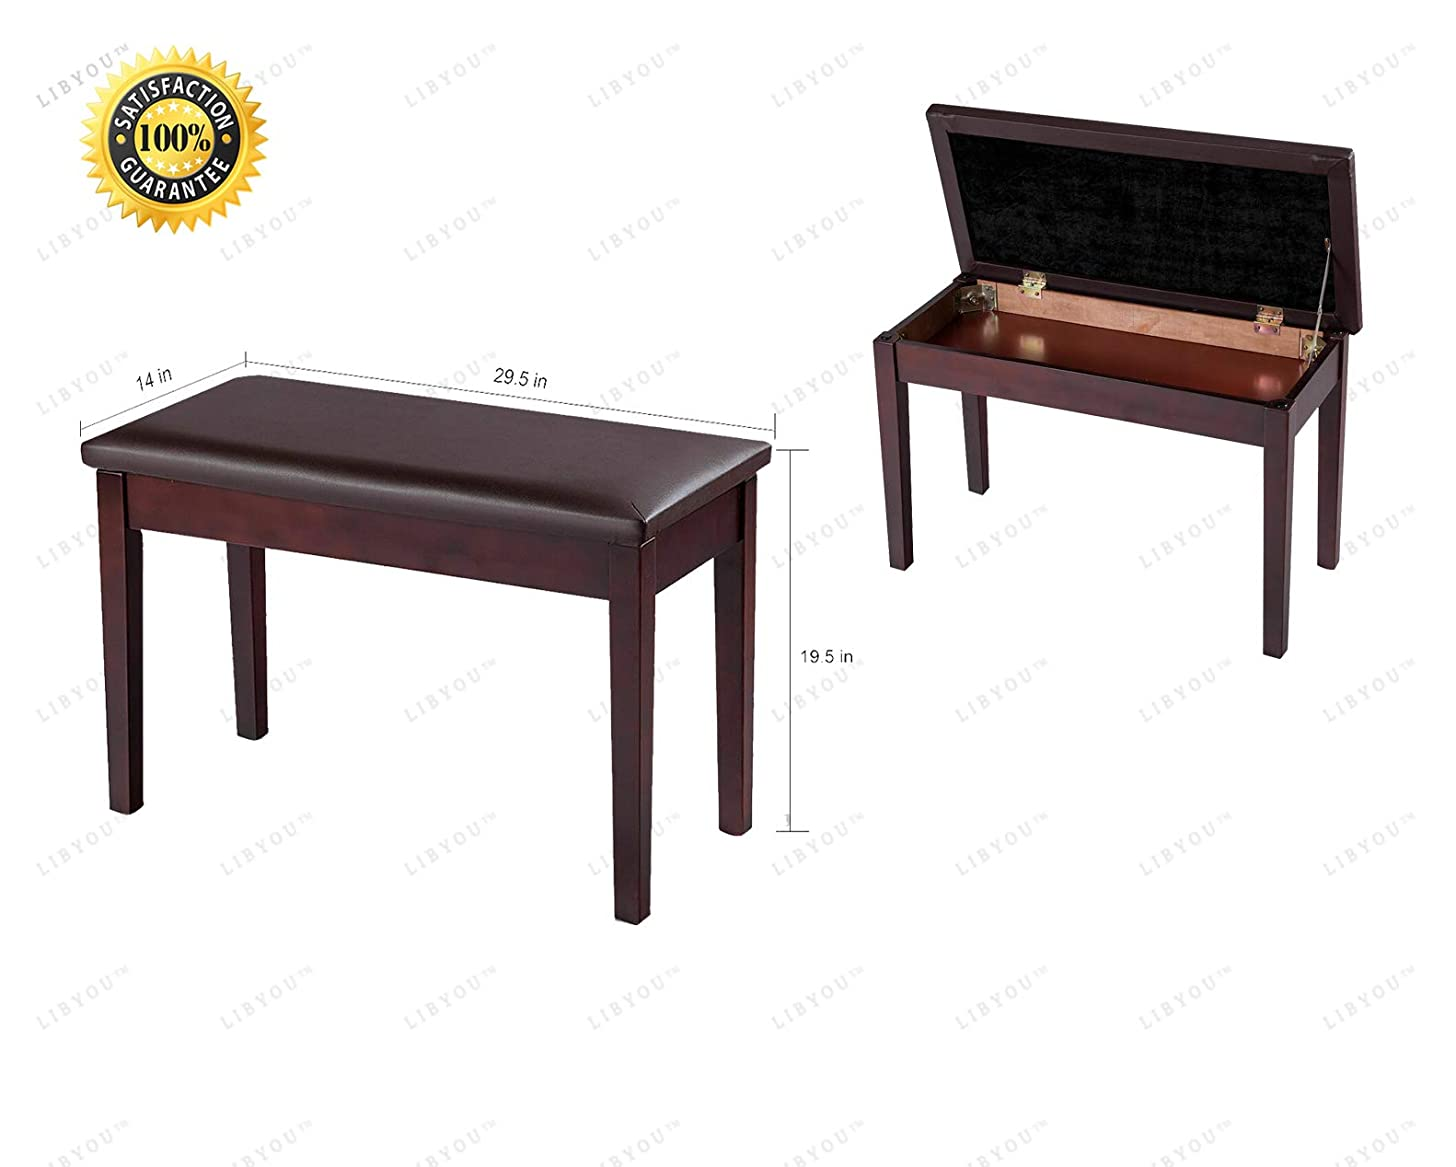 LIBYOU_Piano Bench,Wood Leather Piano Bench,Padded Double Duet Keyboard Seat,Adjustable Piano Bench, Leather Keyboard Padded Seat,Wooden Piano Bench,Piano Stool, Keyboard Bench